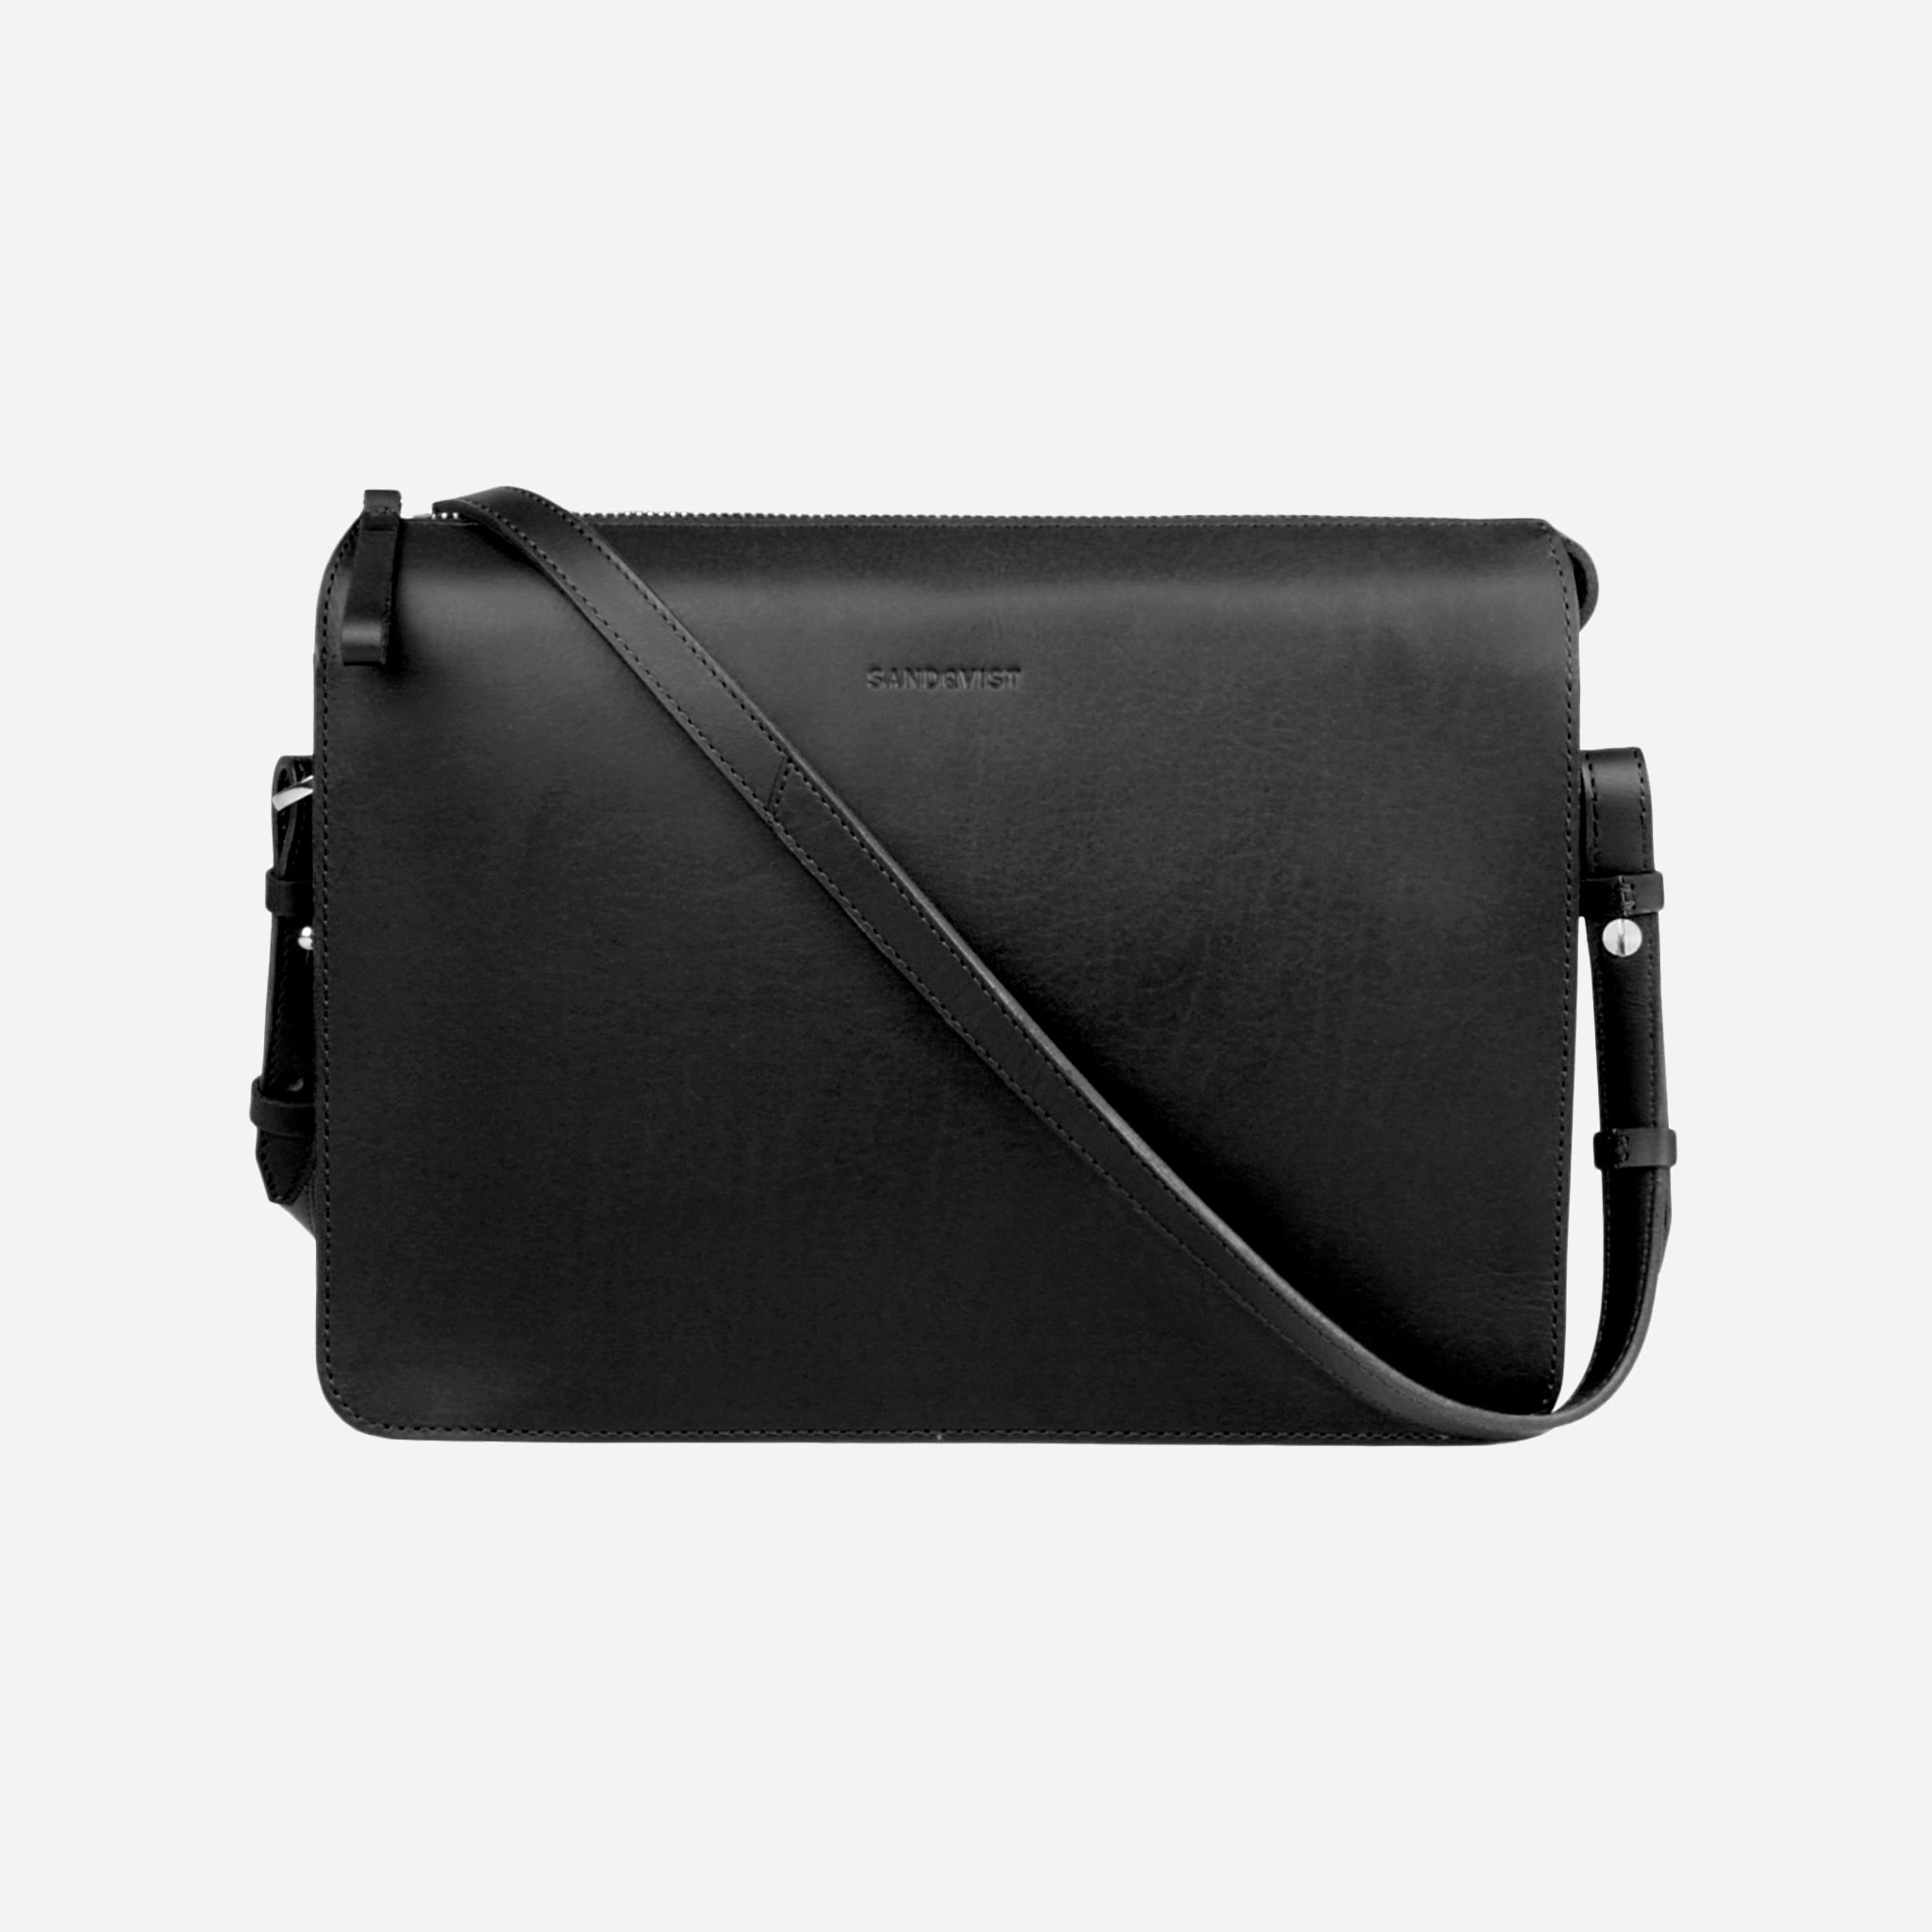 Sandqvist Franka Bag in Black